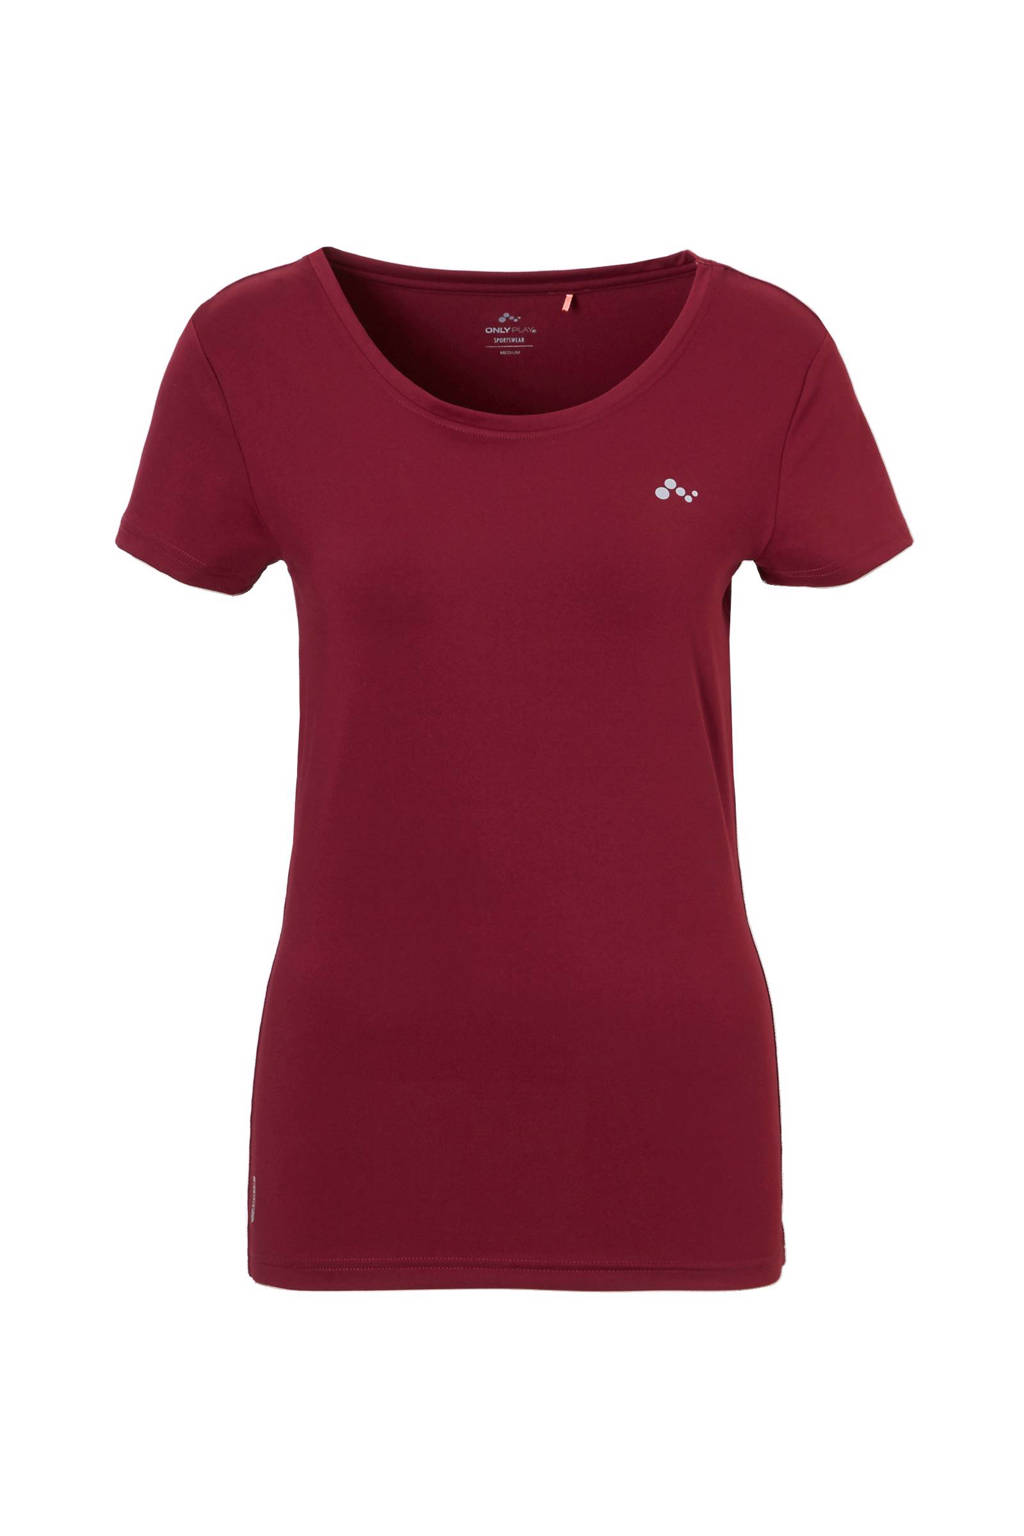 ONLY PLAY sport T-shirt, Bordeaux